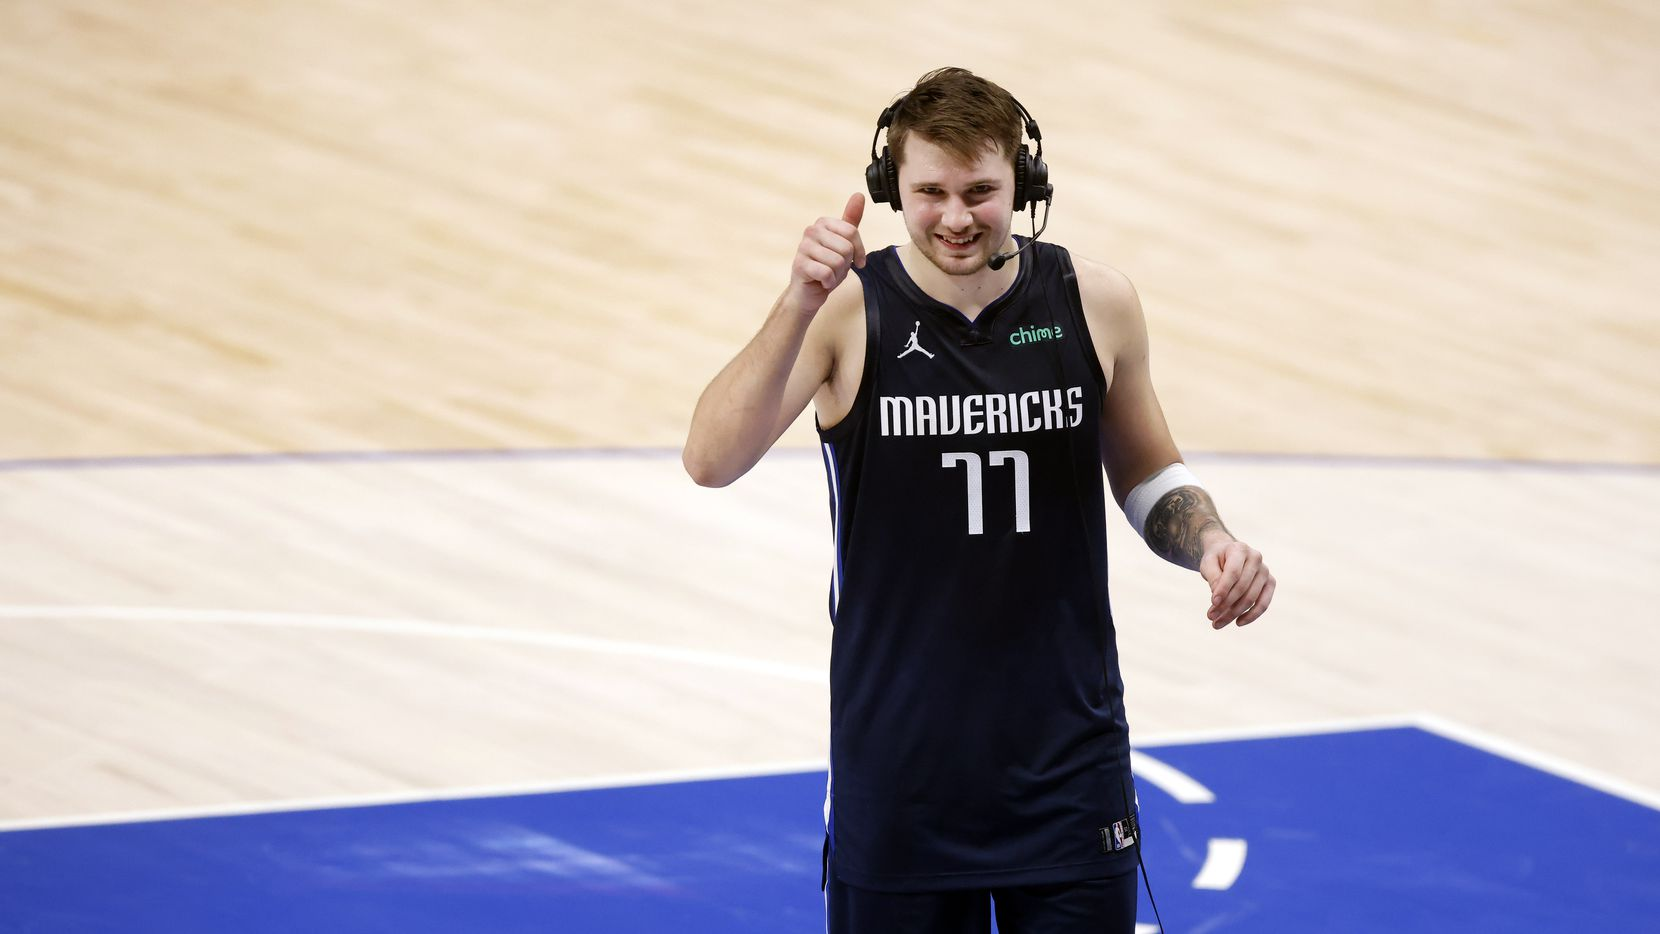 Dallas Mavericks guard Luka Doncic (77) gives a thumbs up to the television camera as he does a psot-game interview following their win over the Boston Celtics at the American Airlines Center in Dallas, Tuesday, February 23, 2021.